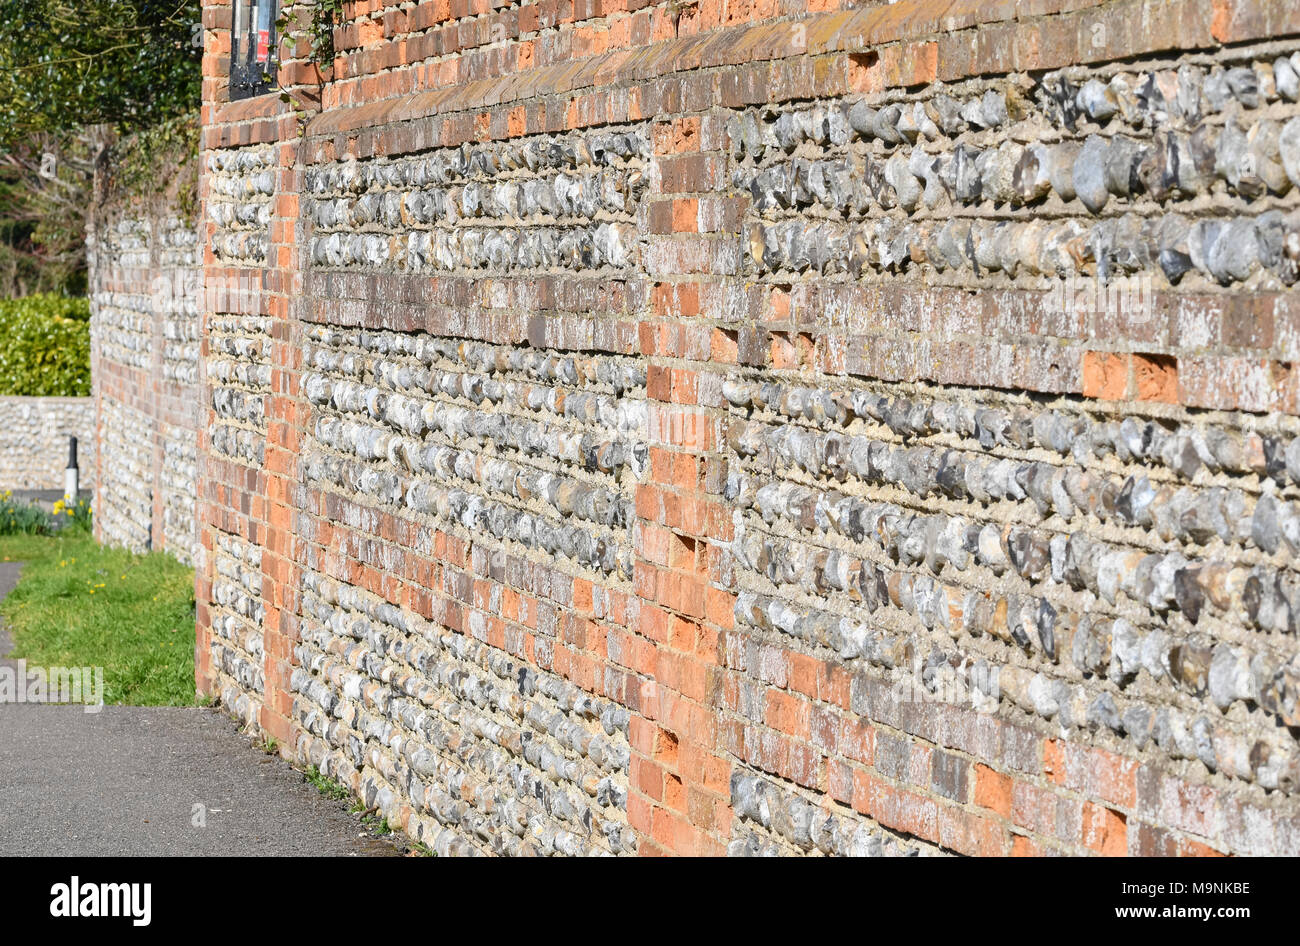 Old flint stone wall with bricks in the UK. - Stock Image